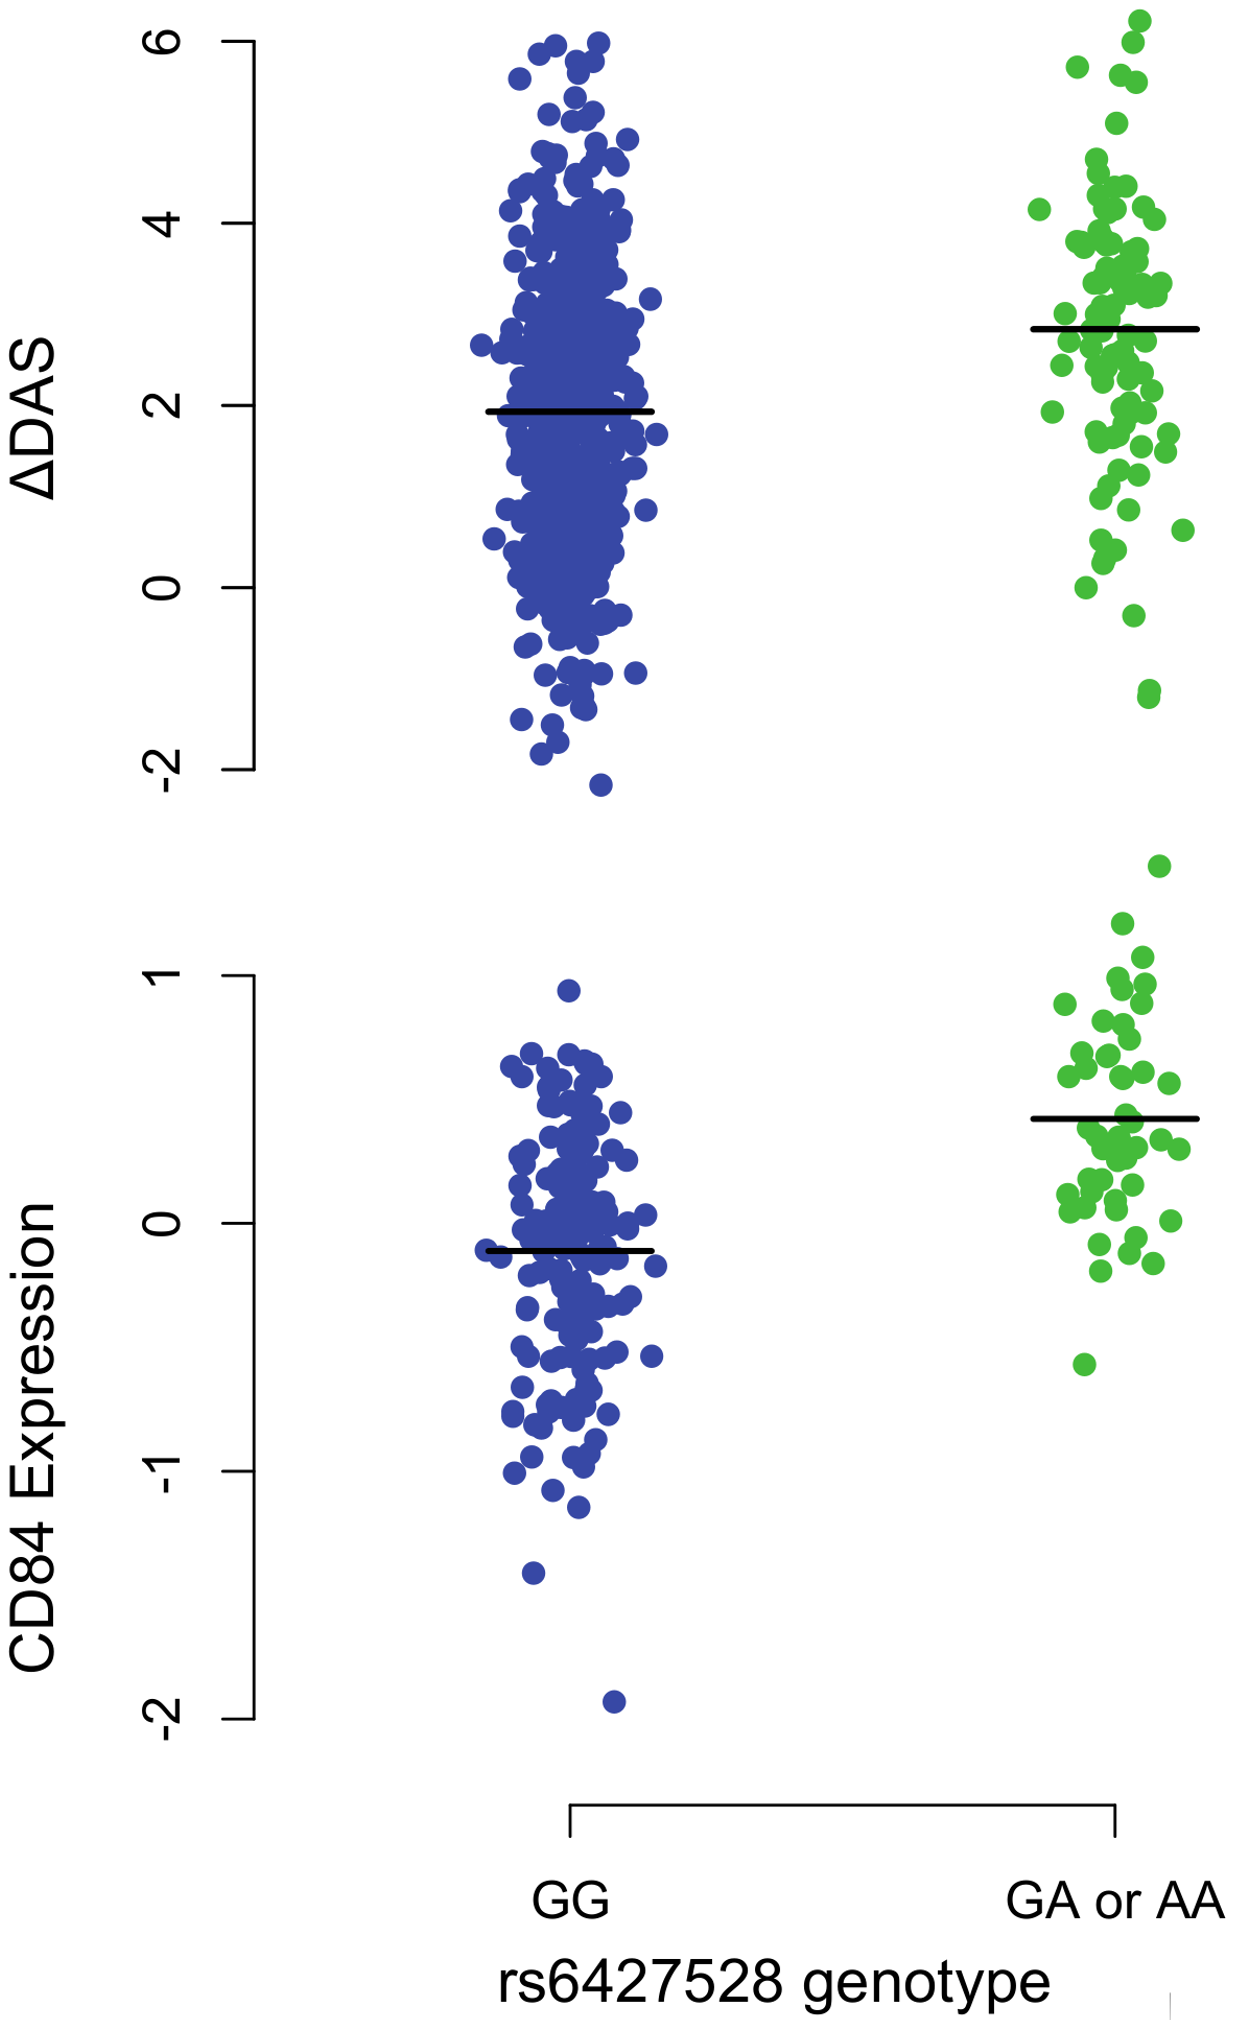 <i>1q23/CD84</i> genotype association plots for ΔDAS and <i>CD84</i> gene expression.